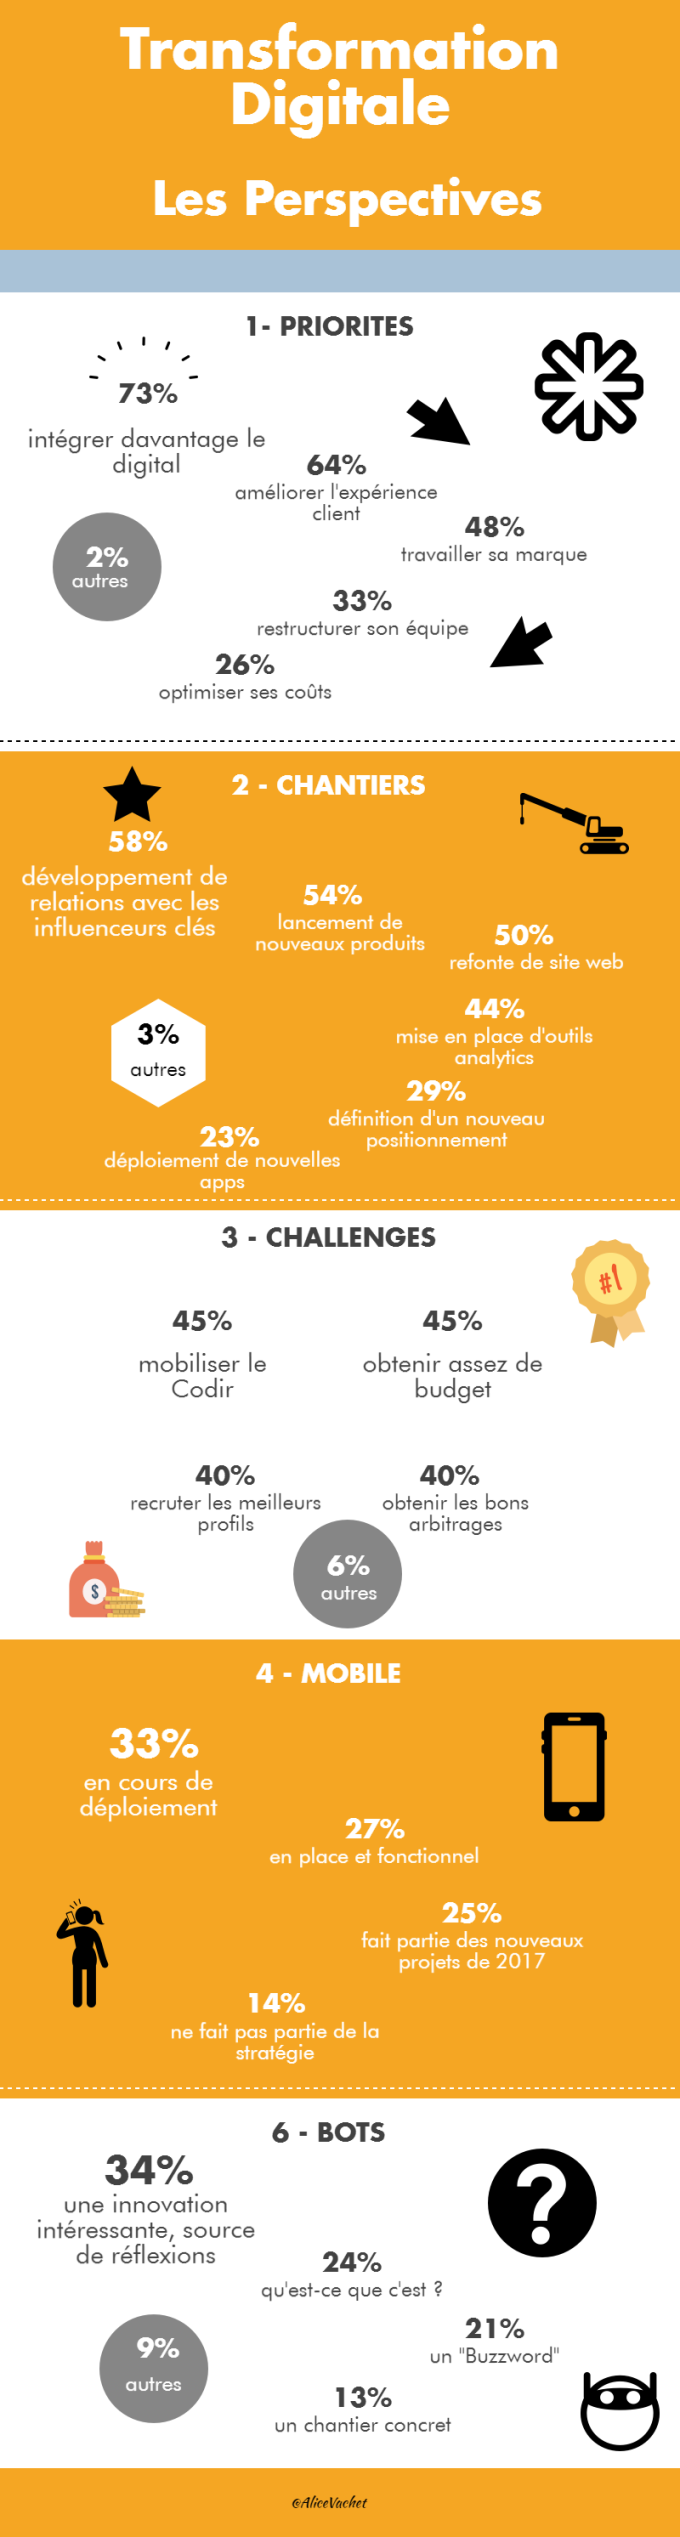 [INFOGRAPHIE] Transformation Digitale : Les Perspectives